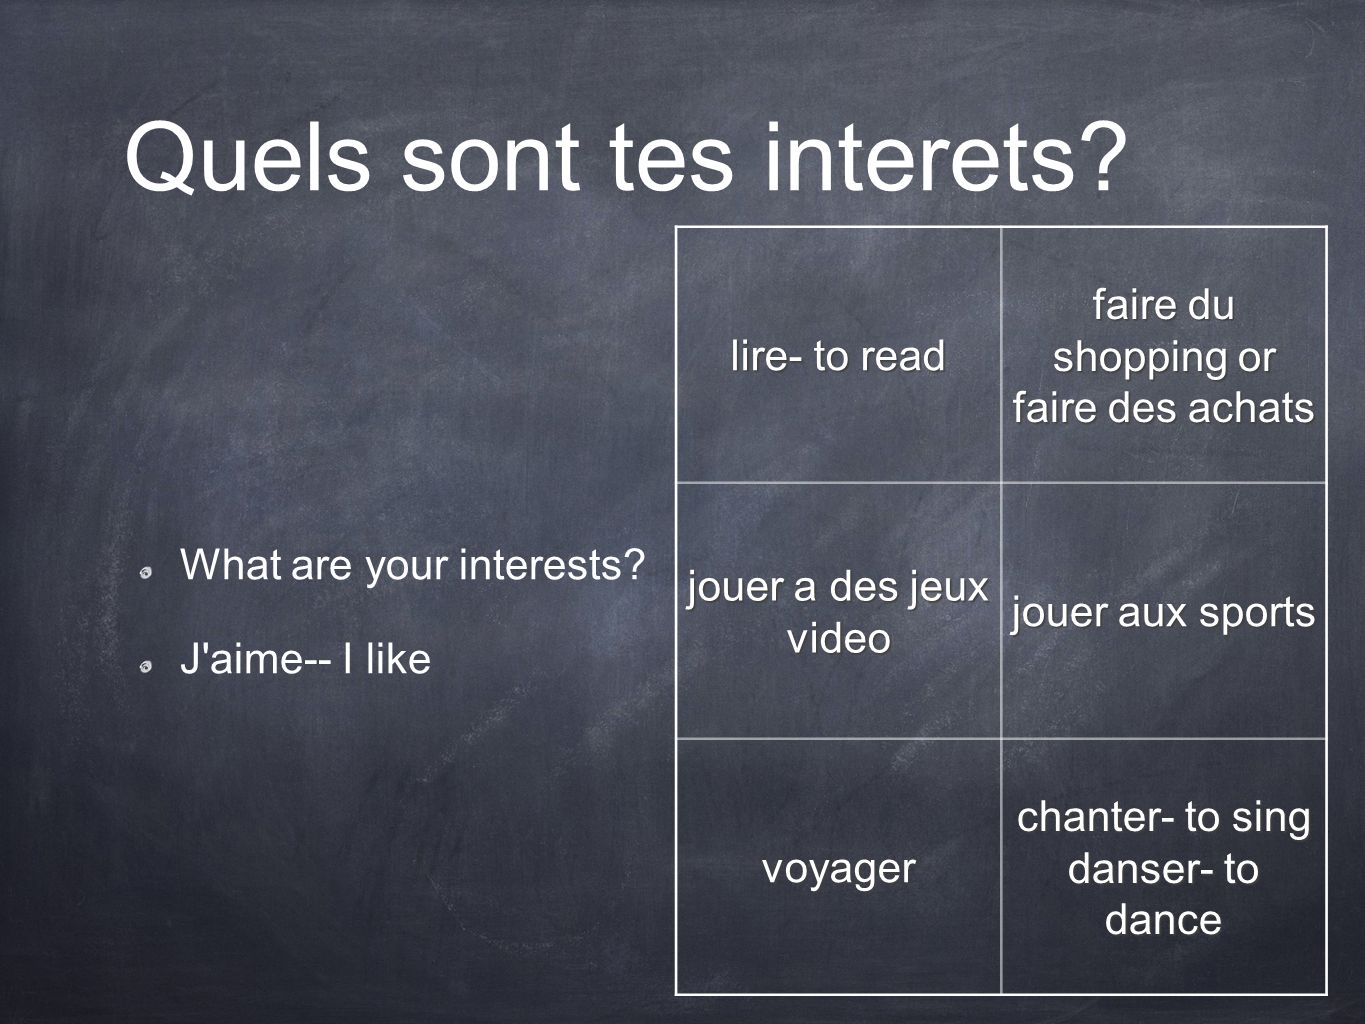 Quels sont tes interets? What are your interests? J'aime-- I like lire- to read faire du shopping or faire des achats jouer a des jeux video jouer aux